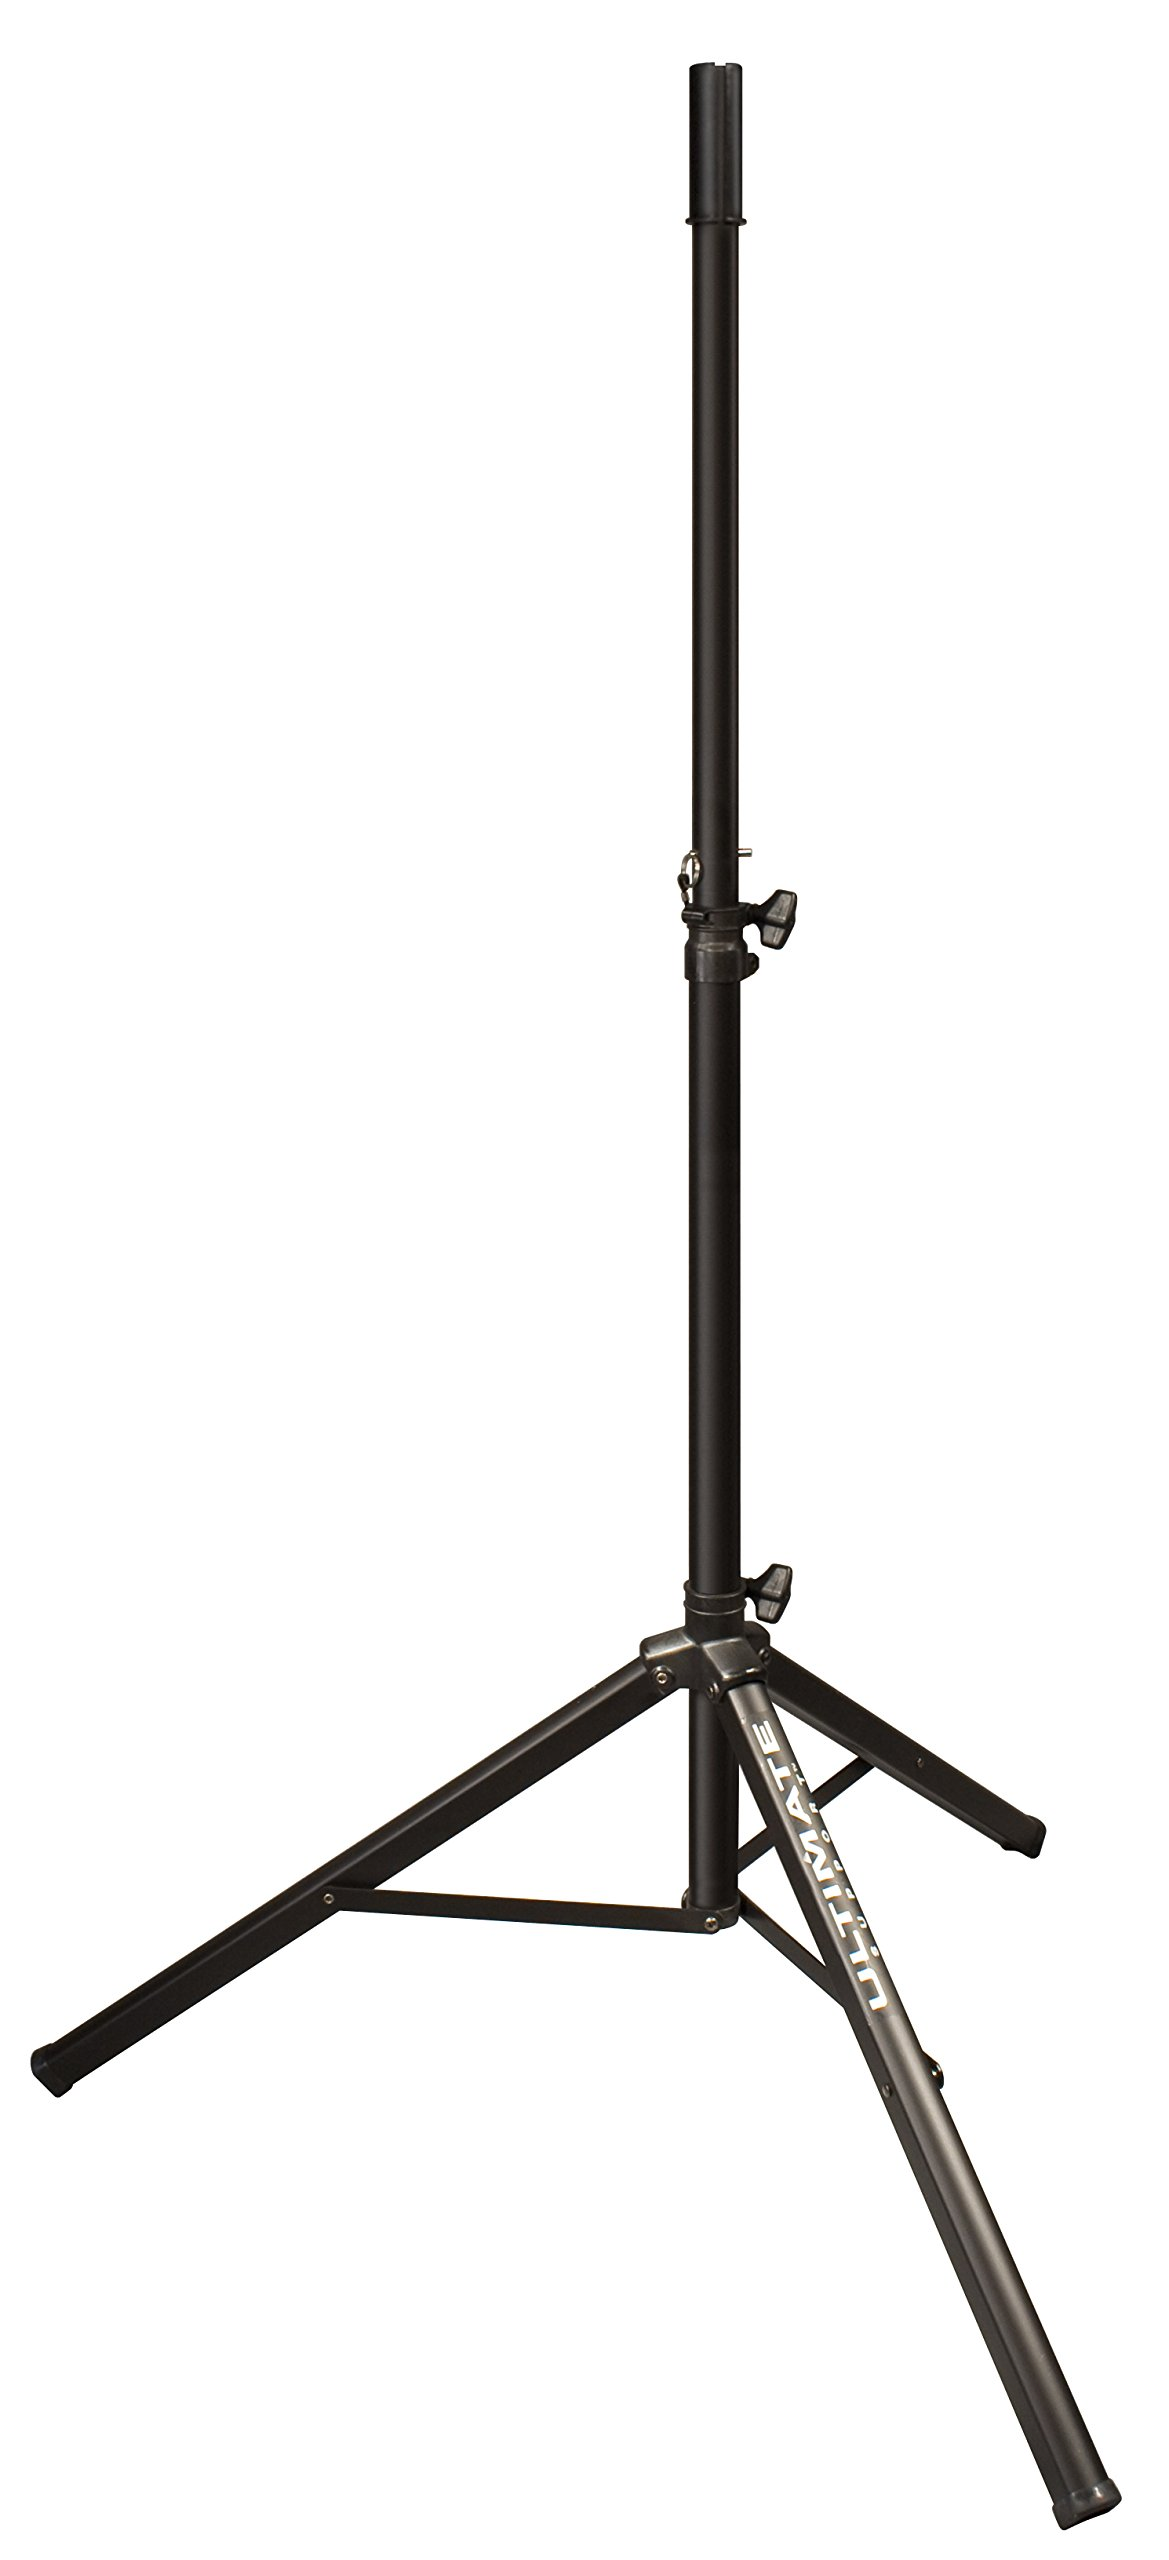 Ultimate Support TS-70B Aluminum Tripod Speaker Stand with Safe and Secure Locking Pin and 150 lb Load Capacity - Black by Ultimate Support